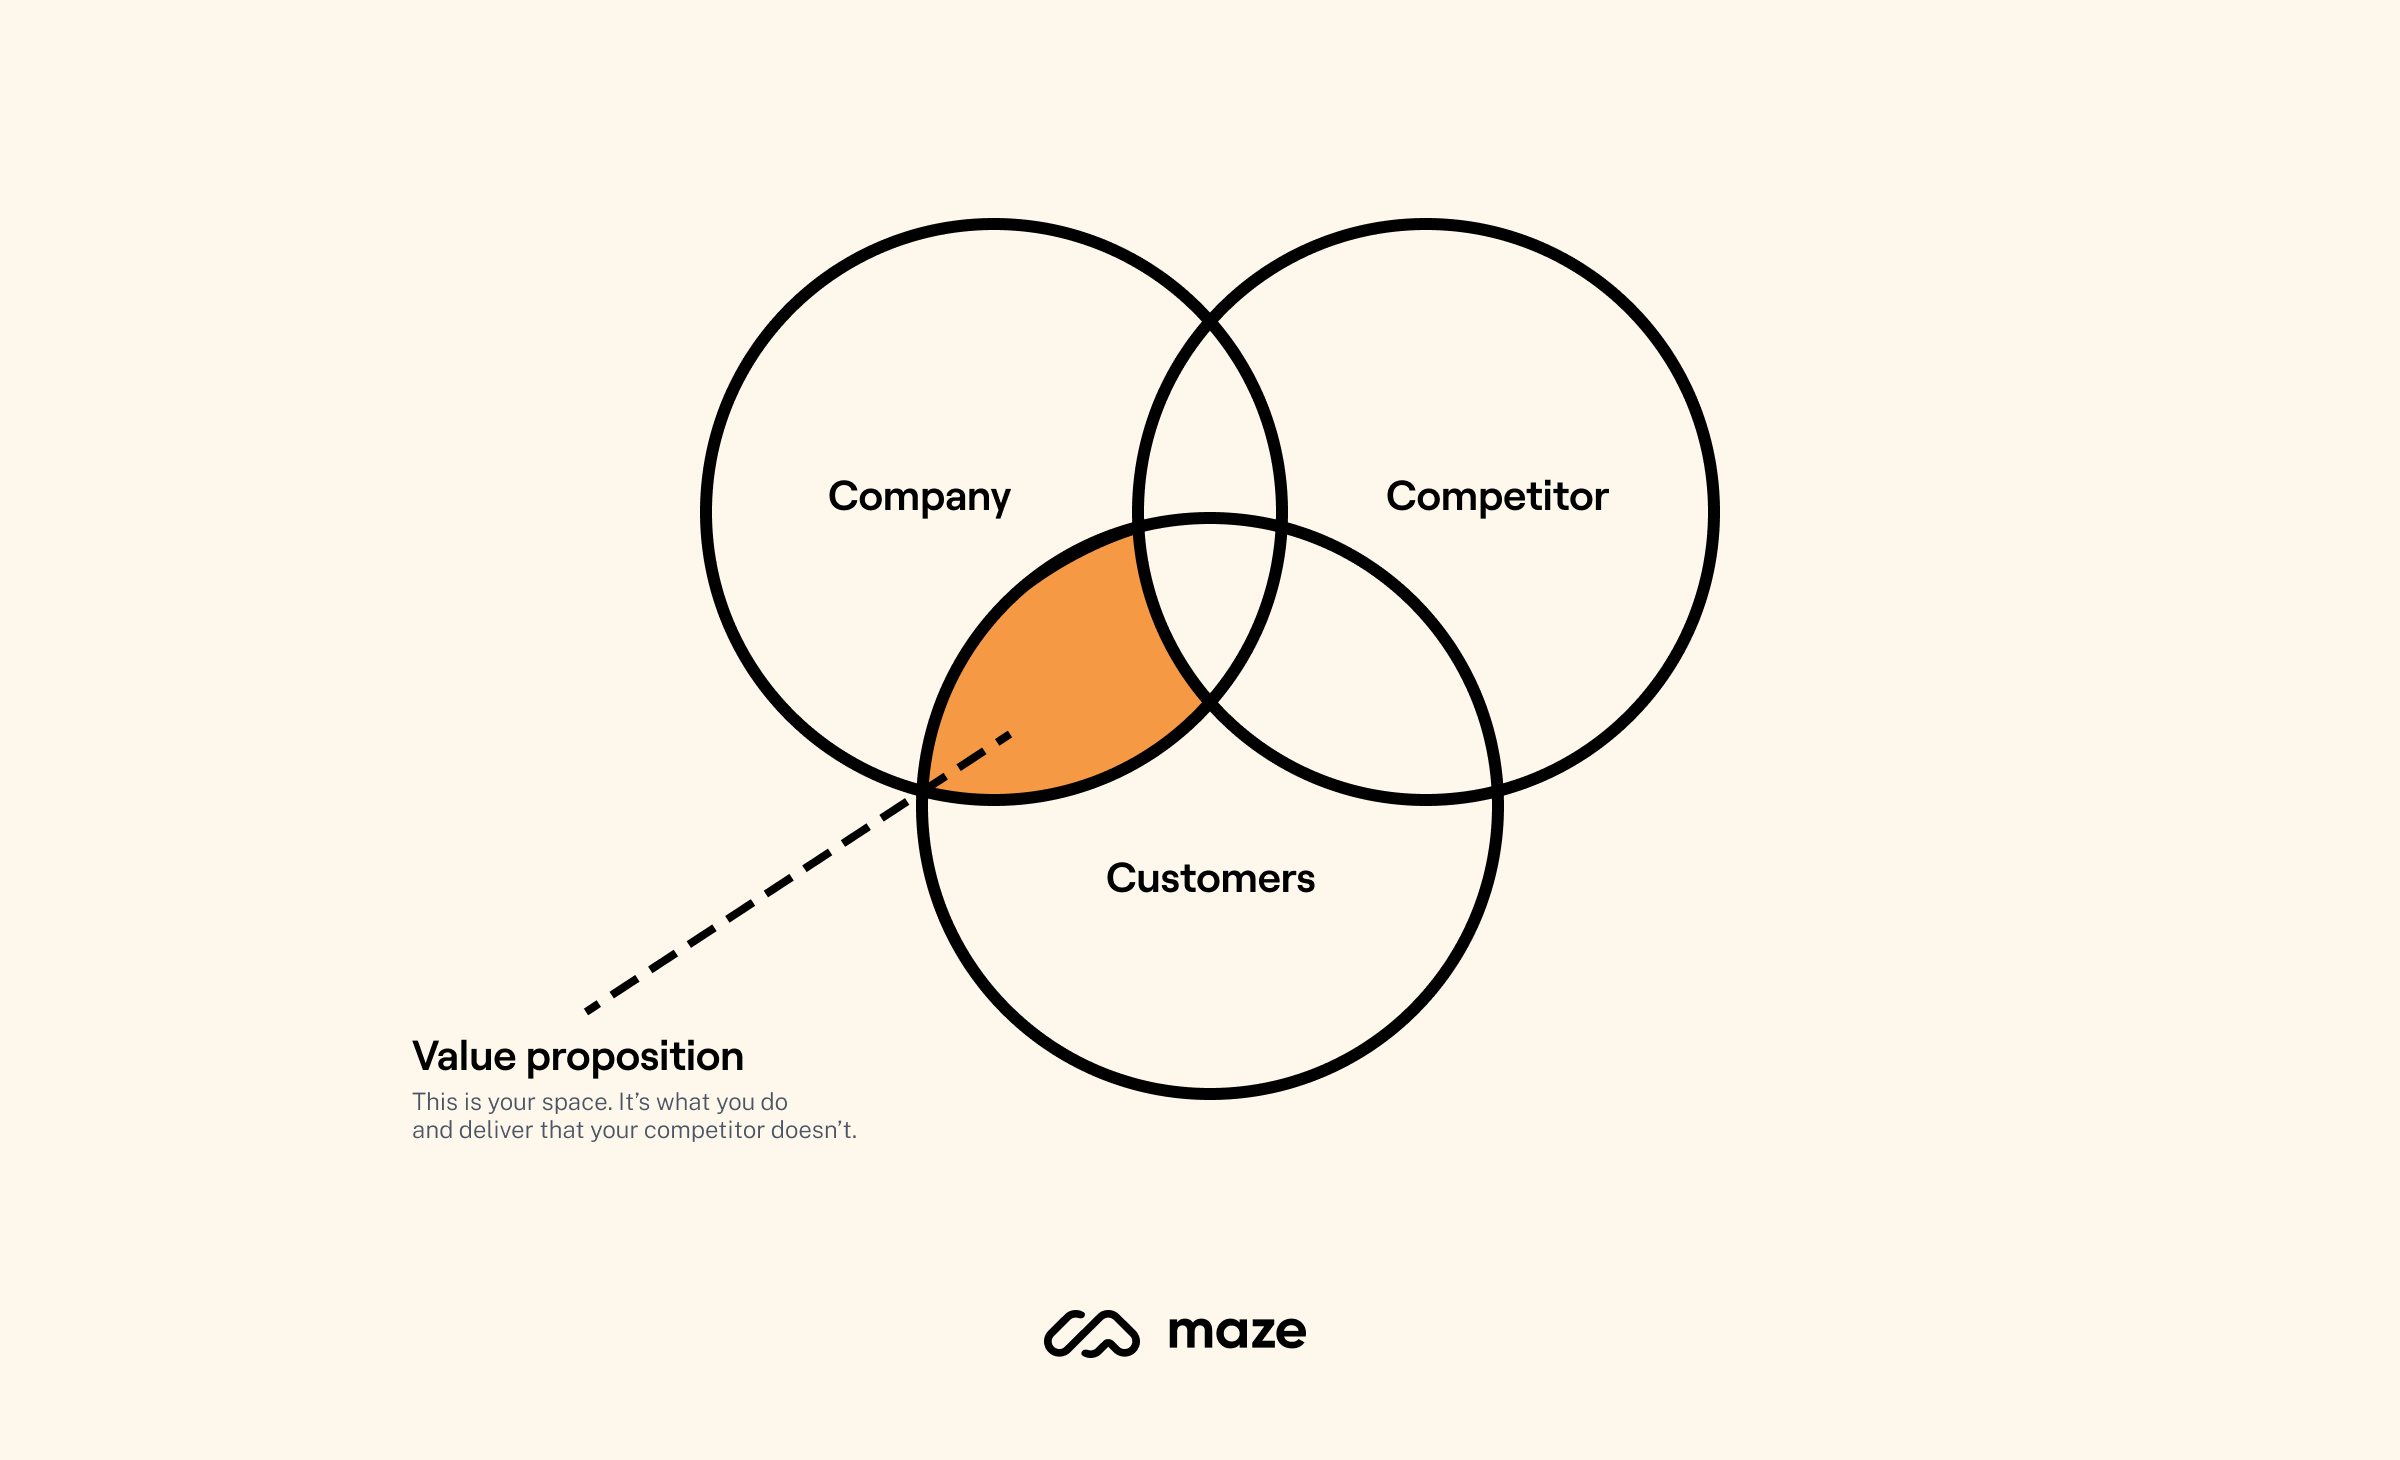 Value proposition explanation by Paul Campillo